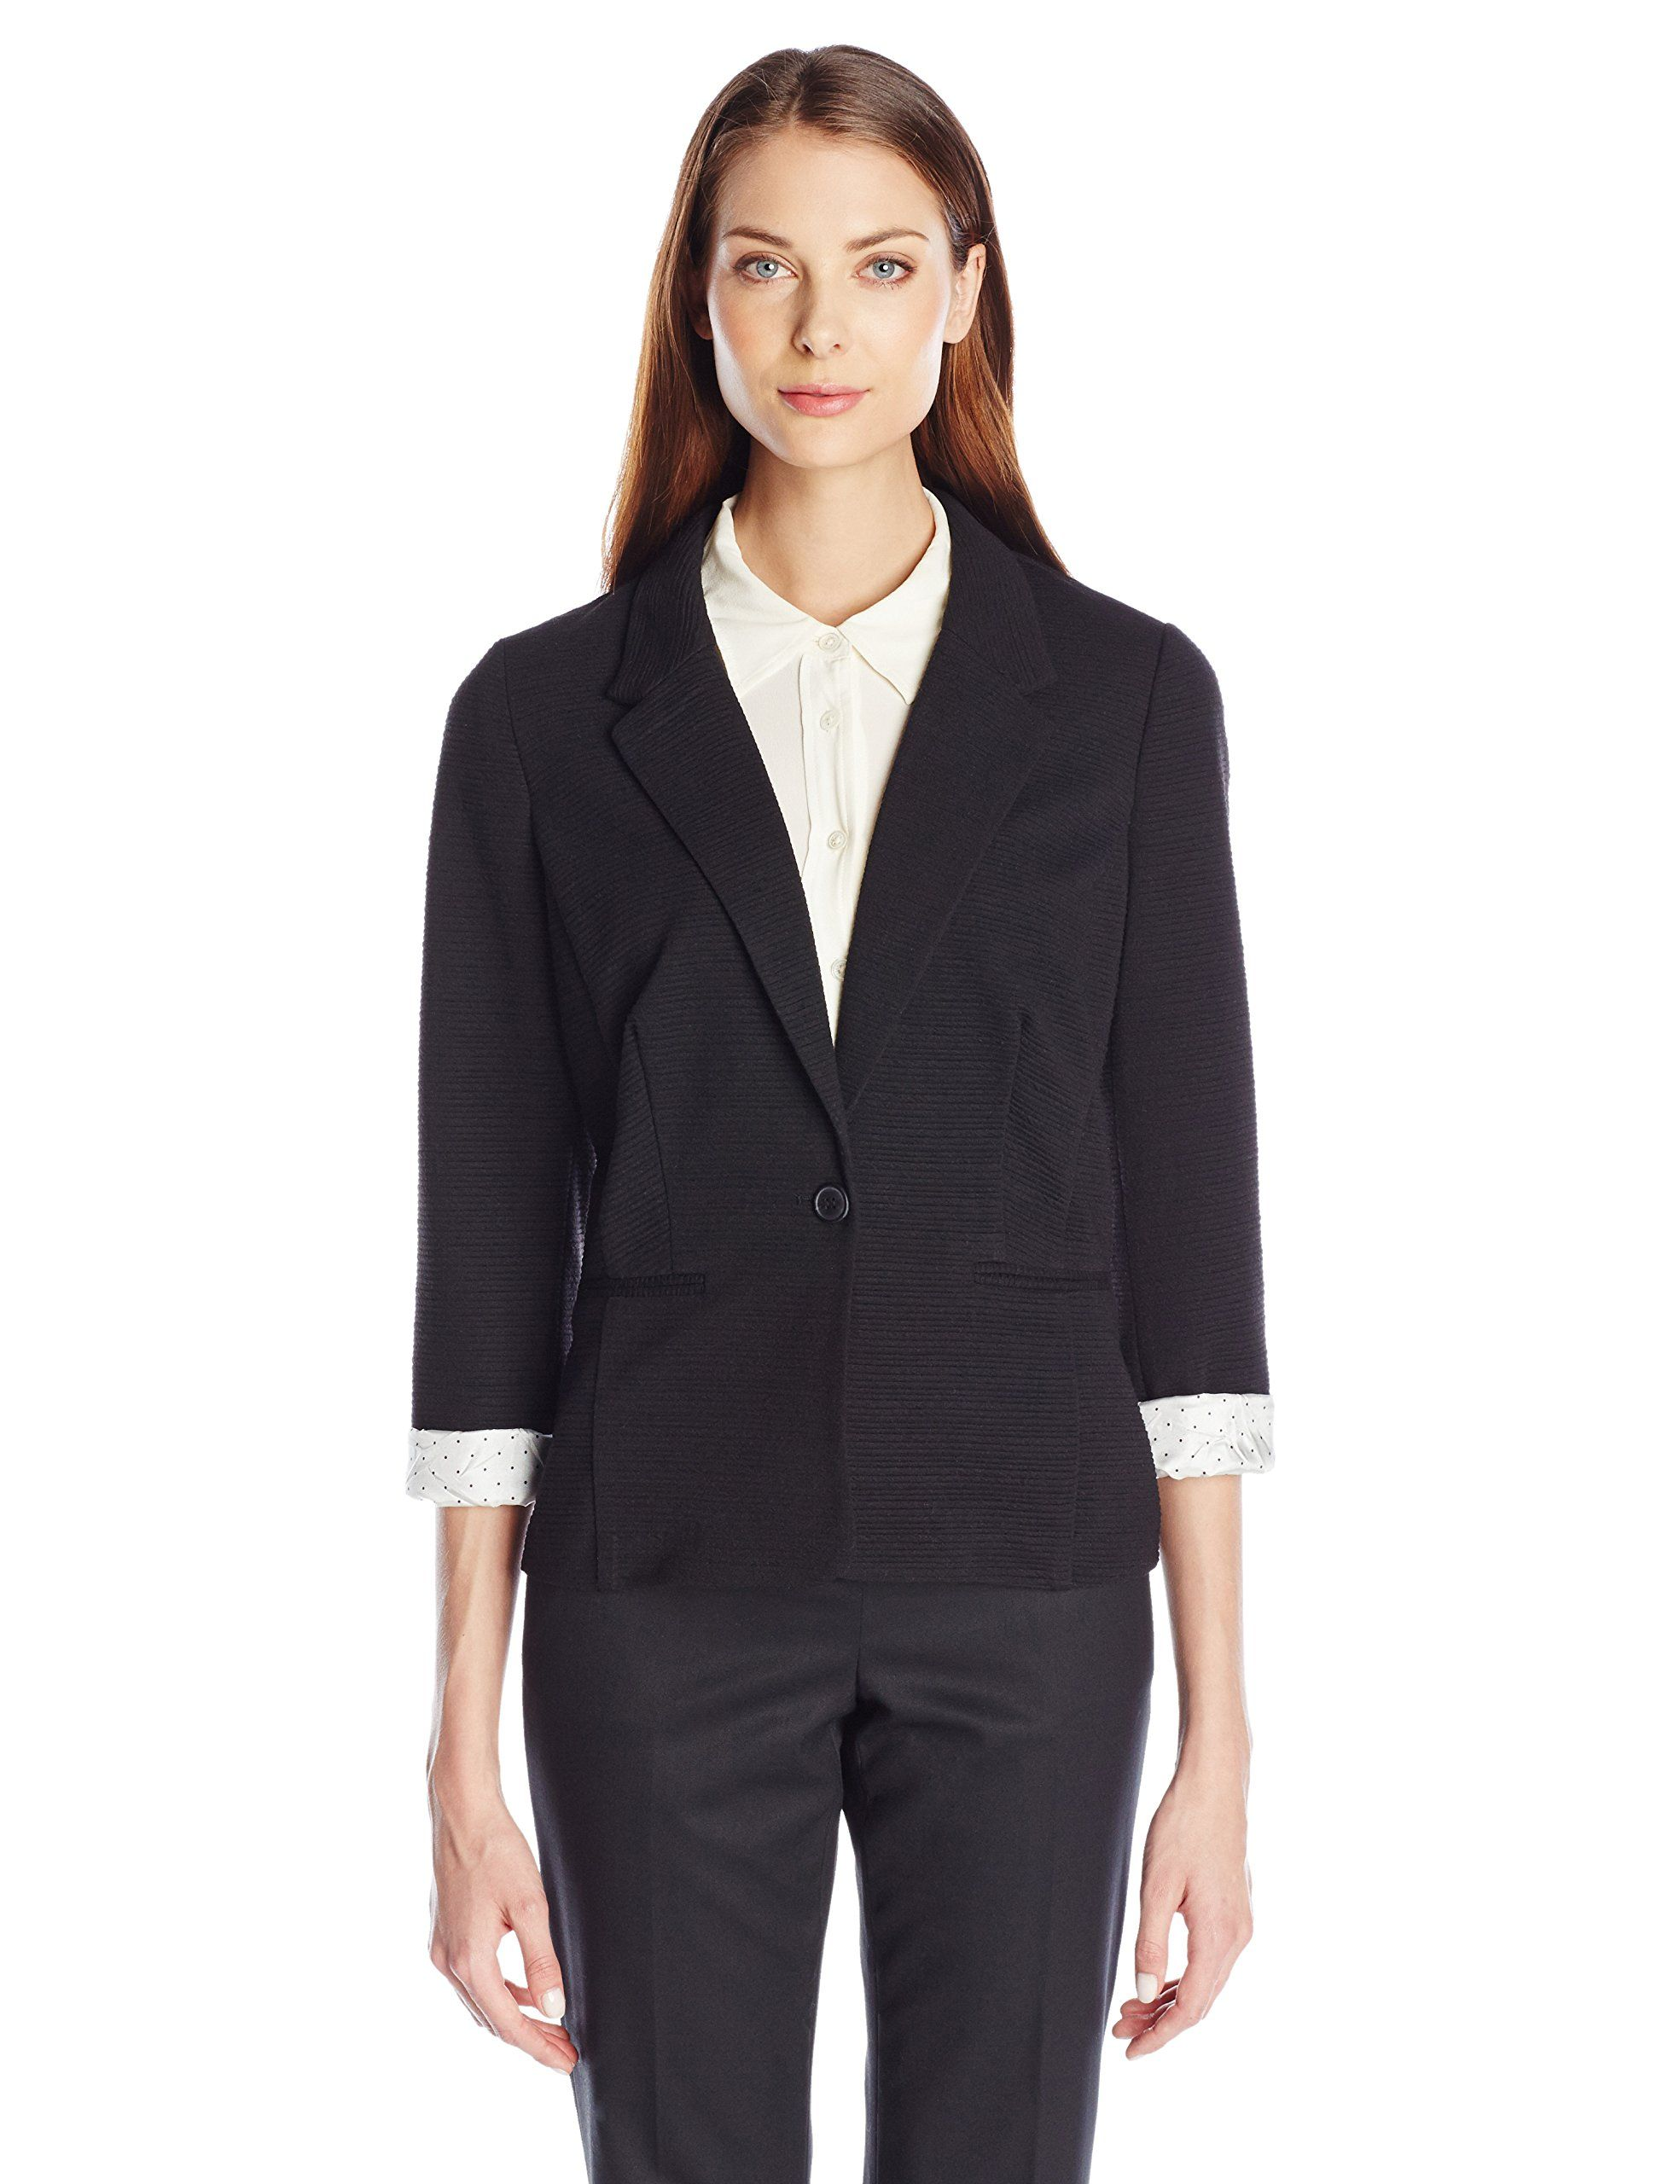 Kensie Women's Ribbed Solid Blazer, Black, X-Small